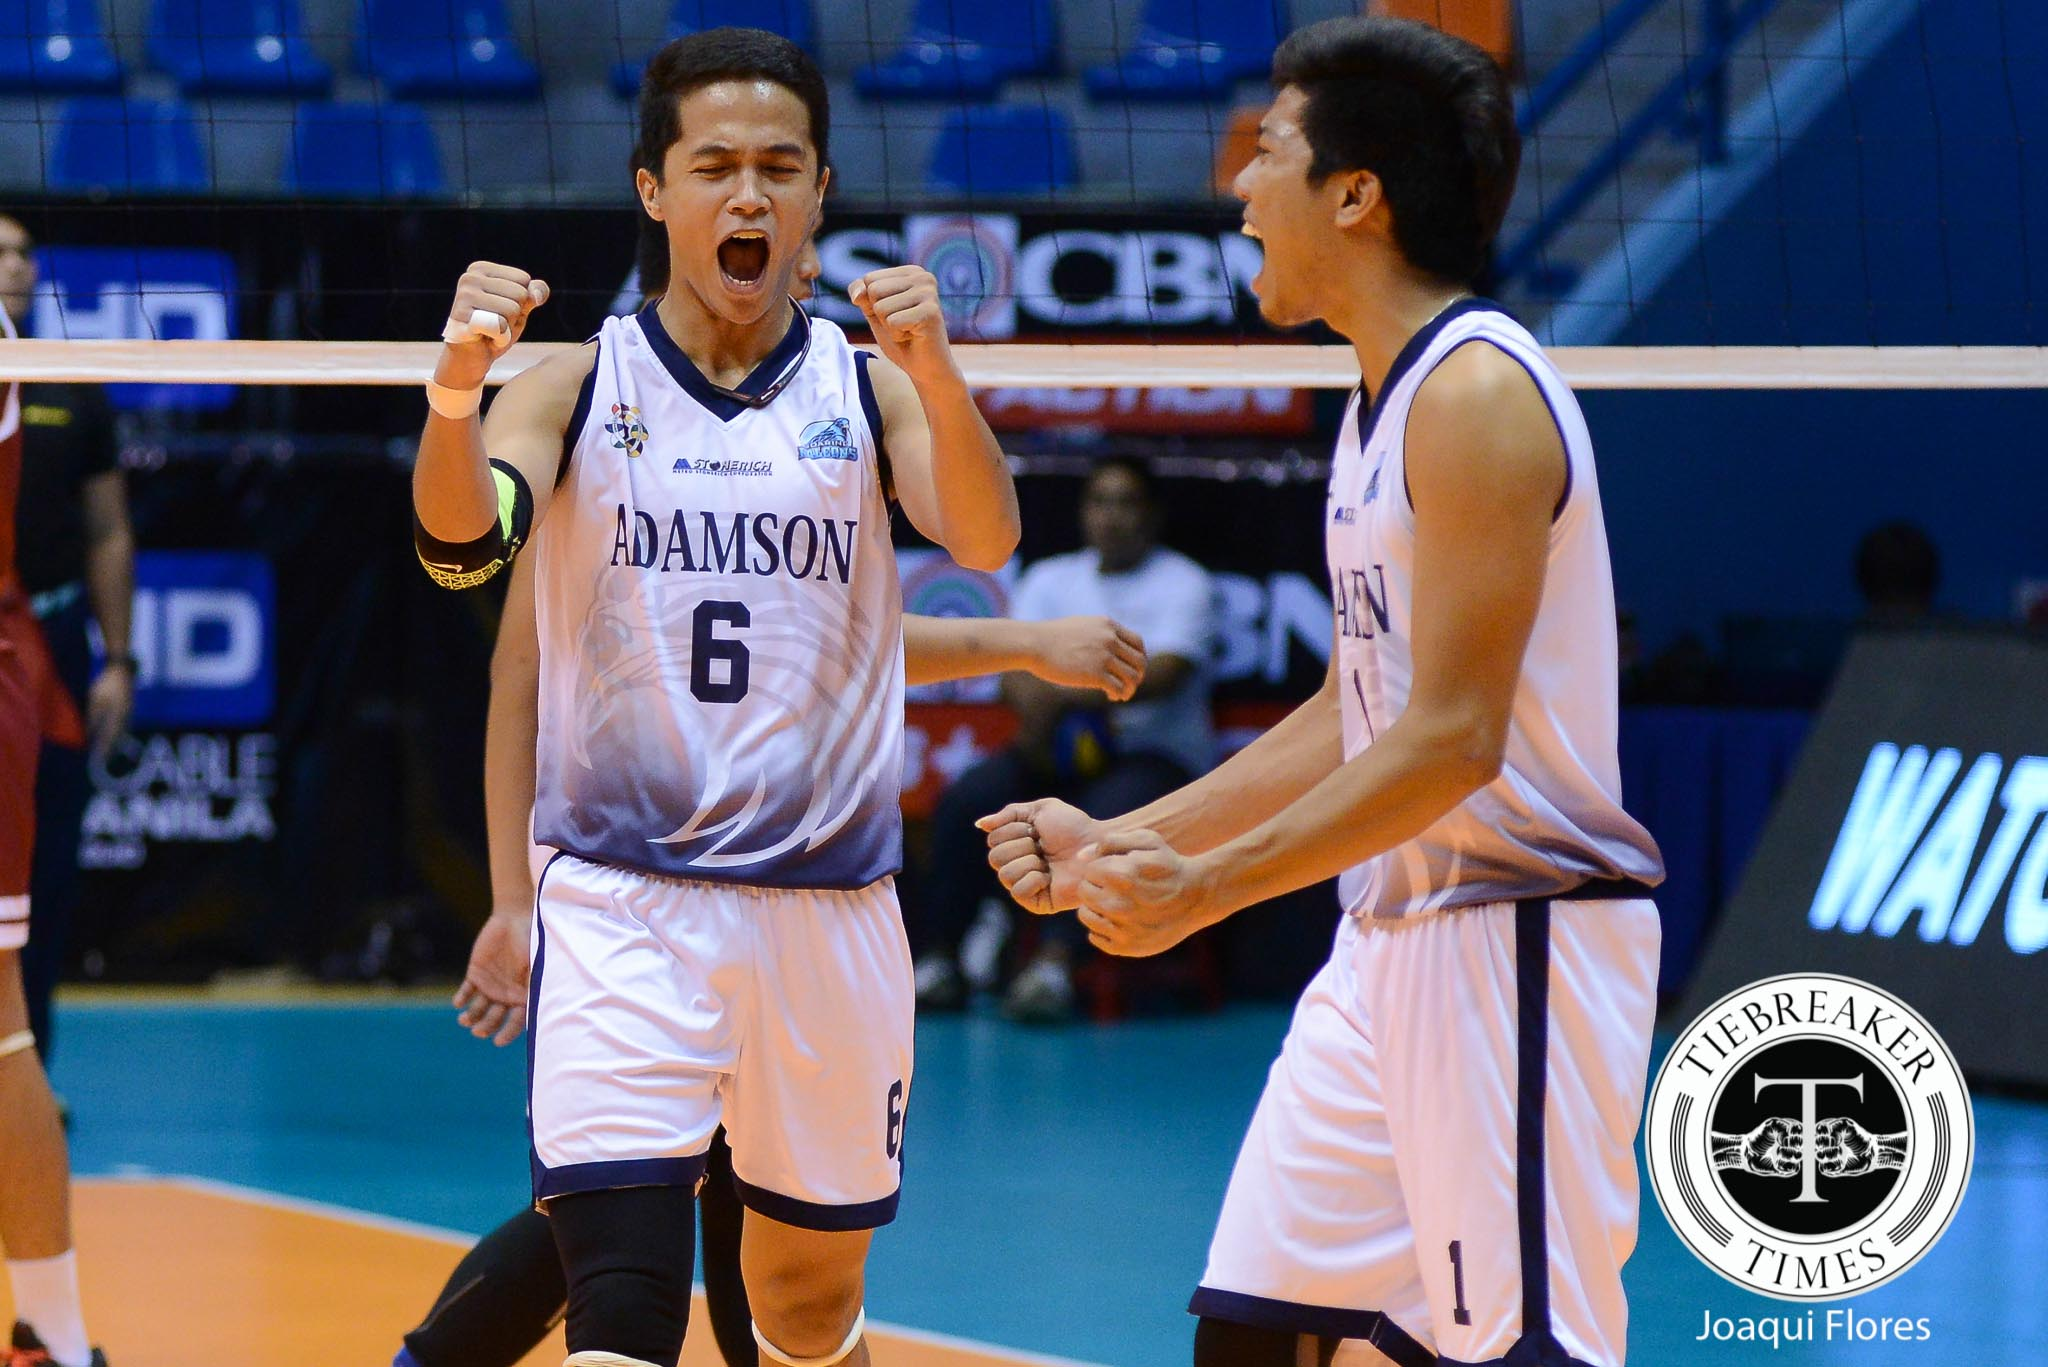 Tiebreaker Times Adamson evades UP upset, bags fifth consecutive win AdU News UAAP UP Volleyball  Wendel Miguel UP Men's Volleyball Team UAAP Season 78 Men's Volleyball Mike Sudaria Mac Millete Jerome Sarmiento Bryan Saraza Alfred Valbuena AdU Men's Volleyball Team